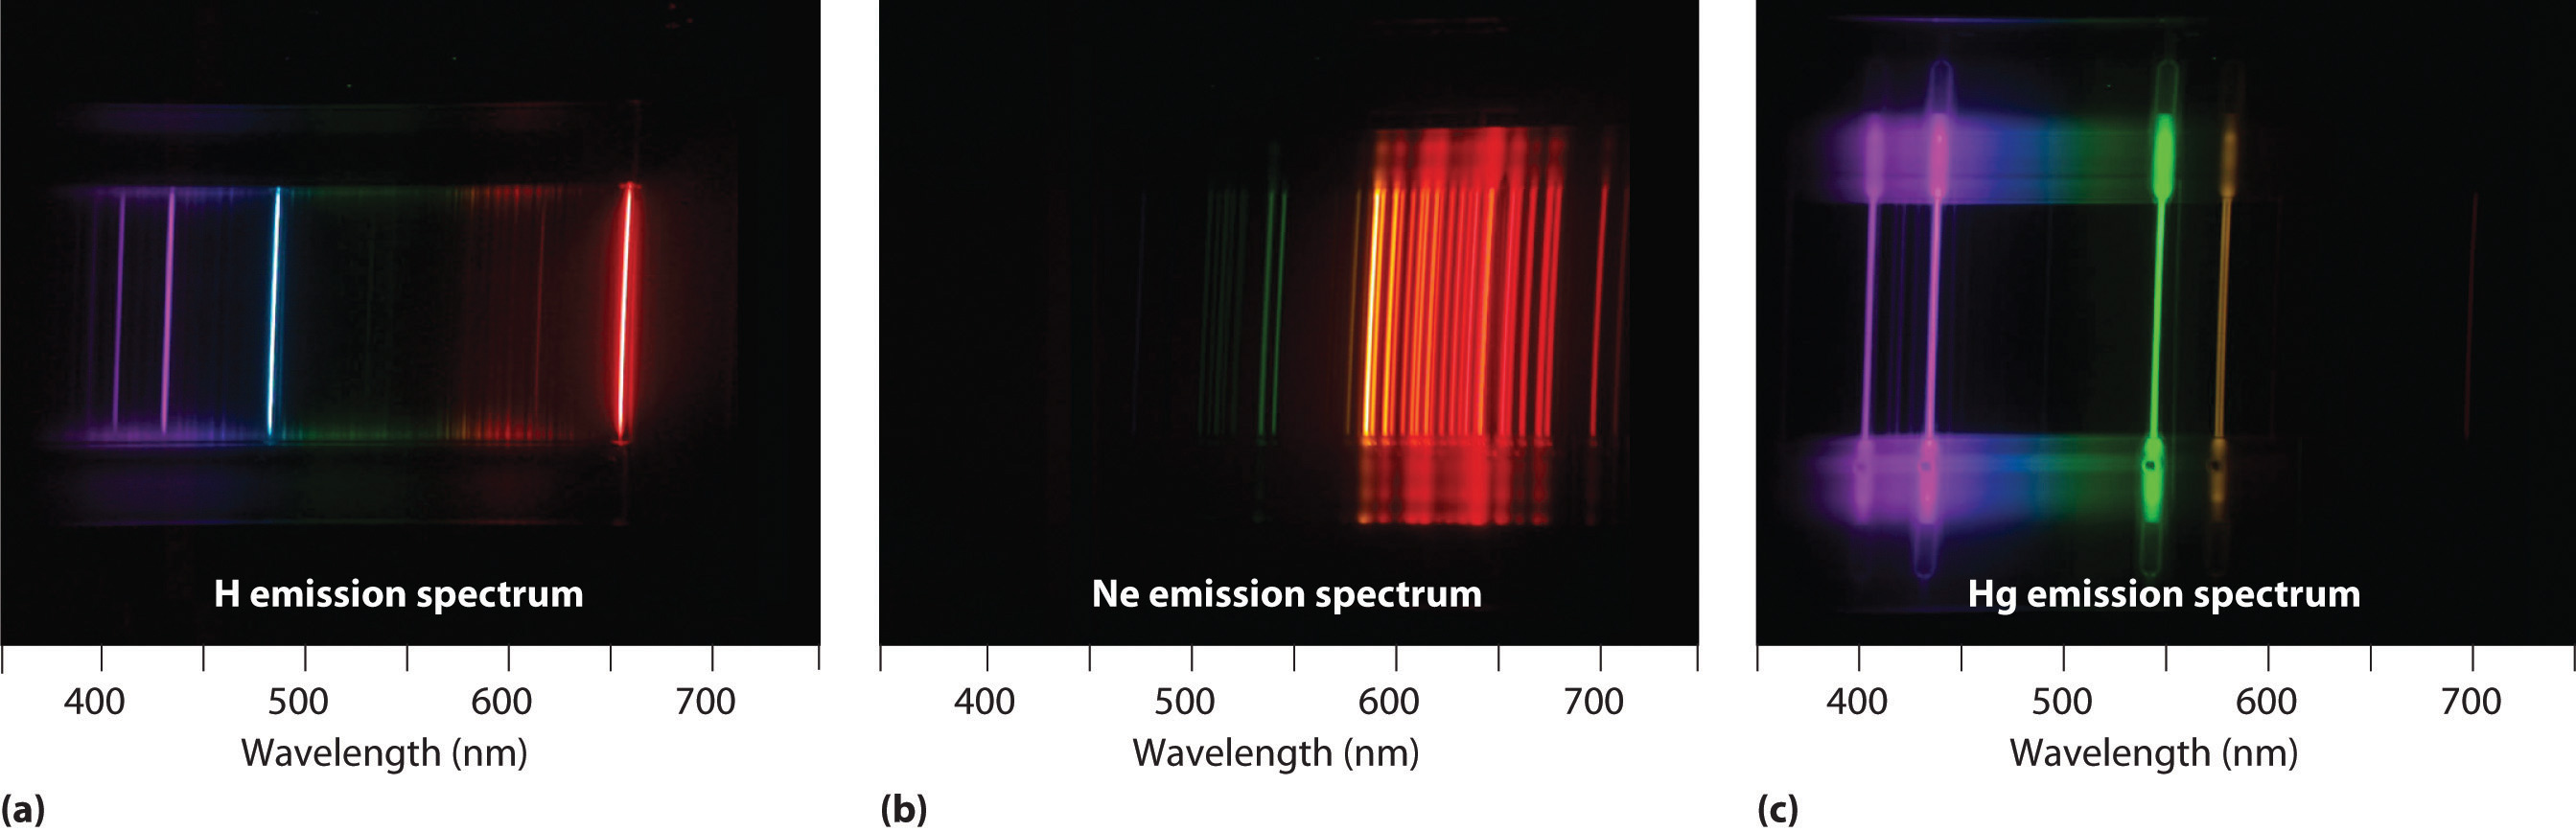 emission spectrum As far as i know, there shouldn't be any differences between the actual wavelengths on either spectrum an emission spectrum shows the spectral lines of light that an element is able to release.